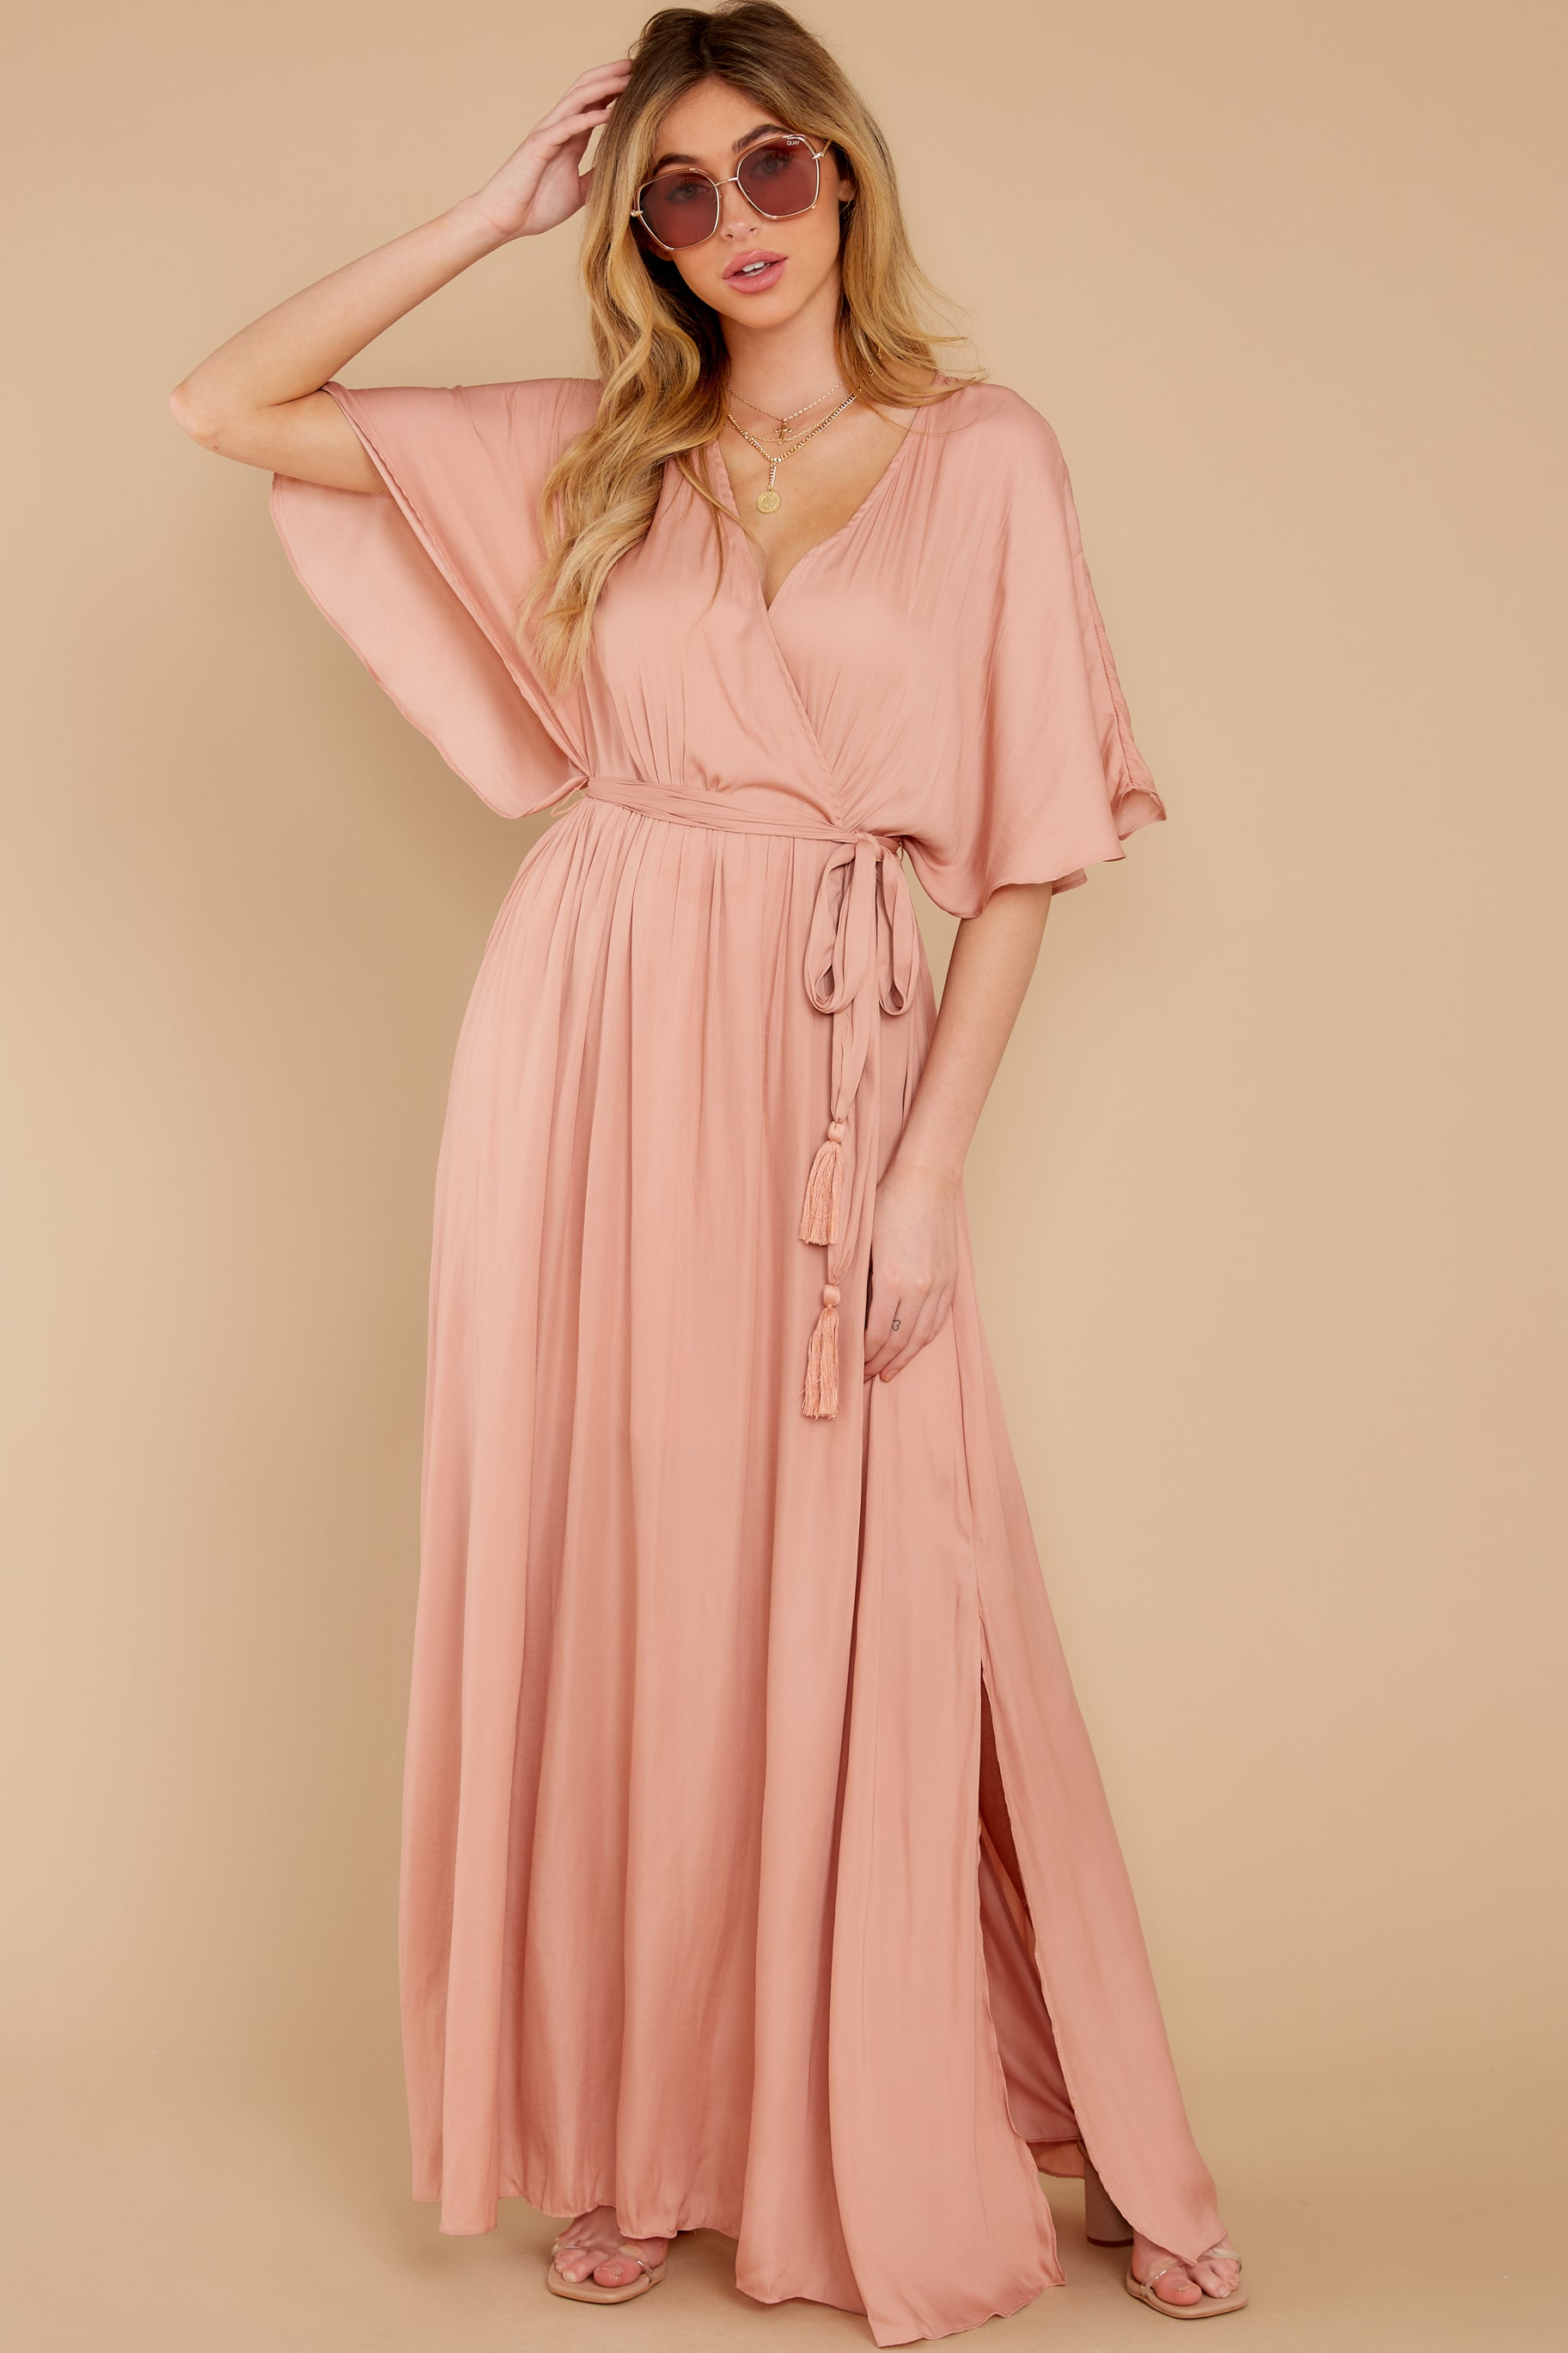 3 Cross My Heart Pink Maxi Dress at reddress.com